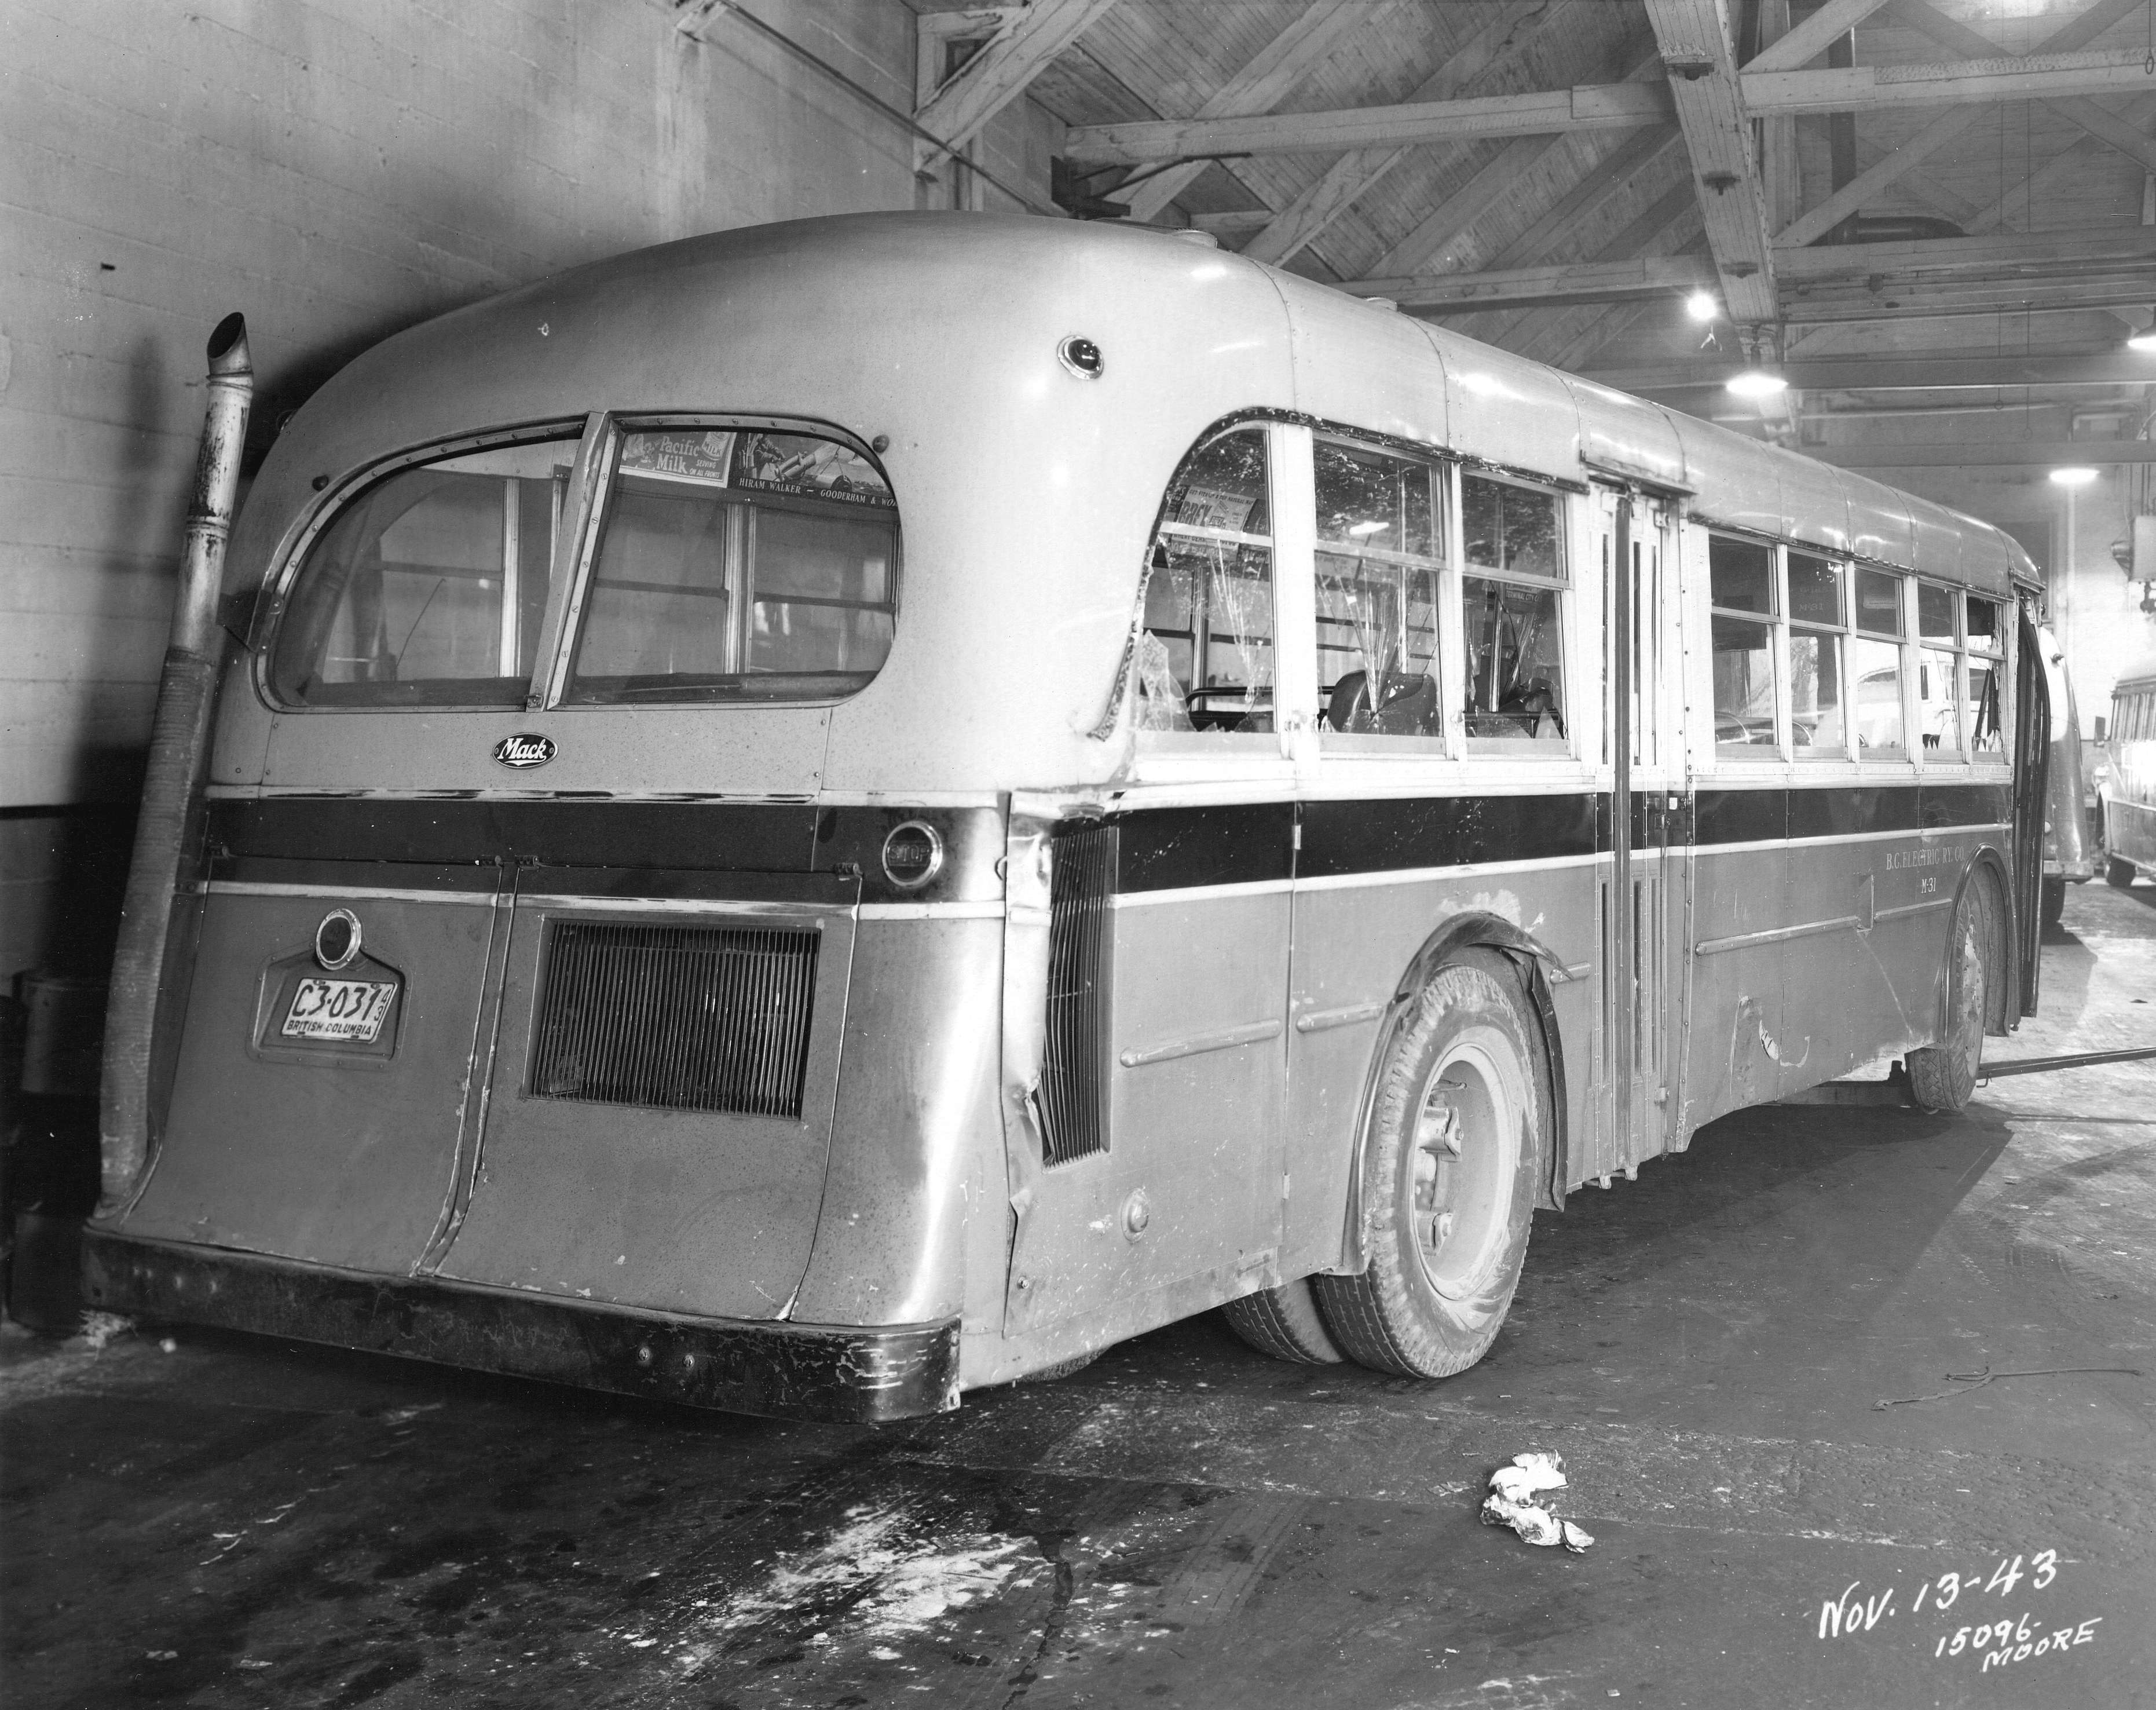 A B C  Electric Railway bus damaged in an accident] - City